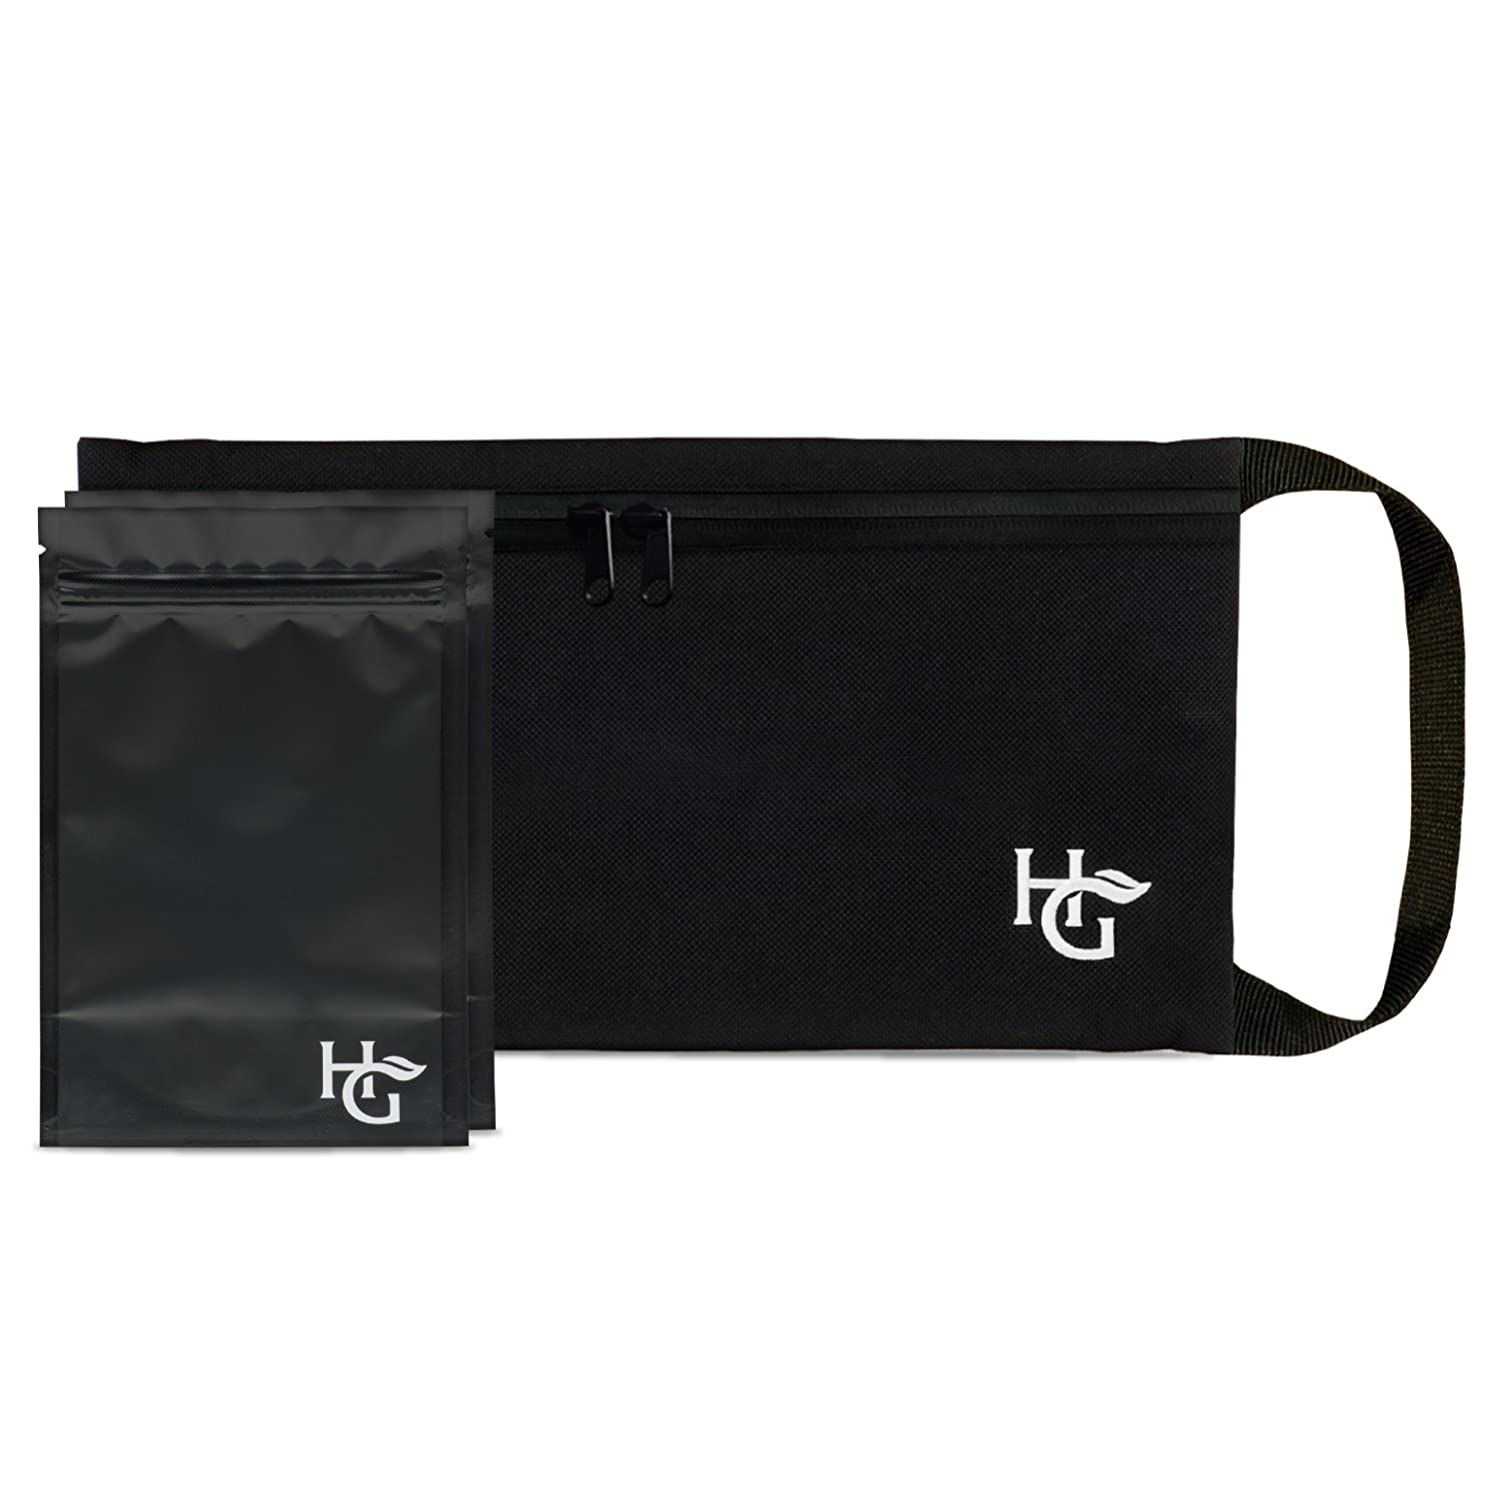 Discreet Smell Proof Bag with Zipper by Herb Guard (11x6 inches, Holds 2 Ounces) - Comes with 2 Resealable Travel Bags to Store Dried Foods, Spices, Herbs and Consumable Good